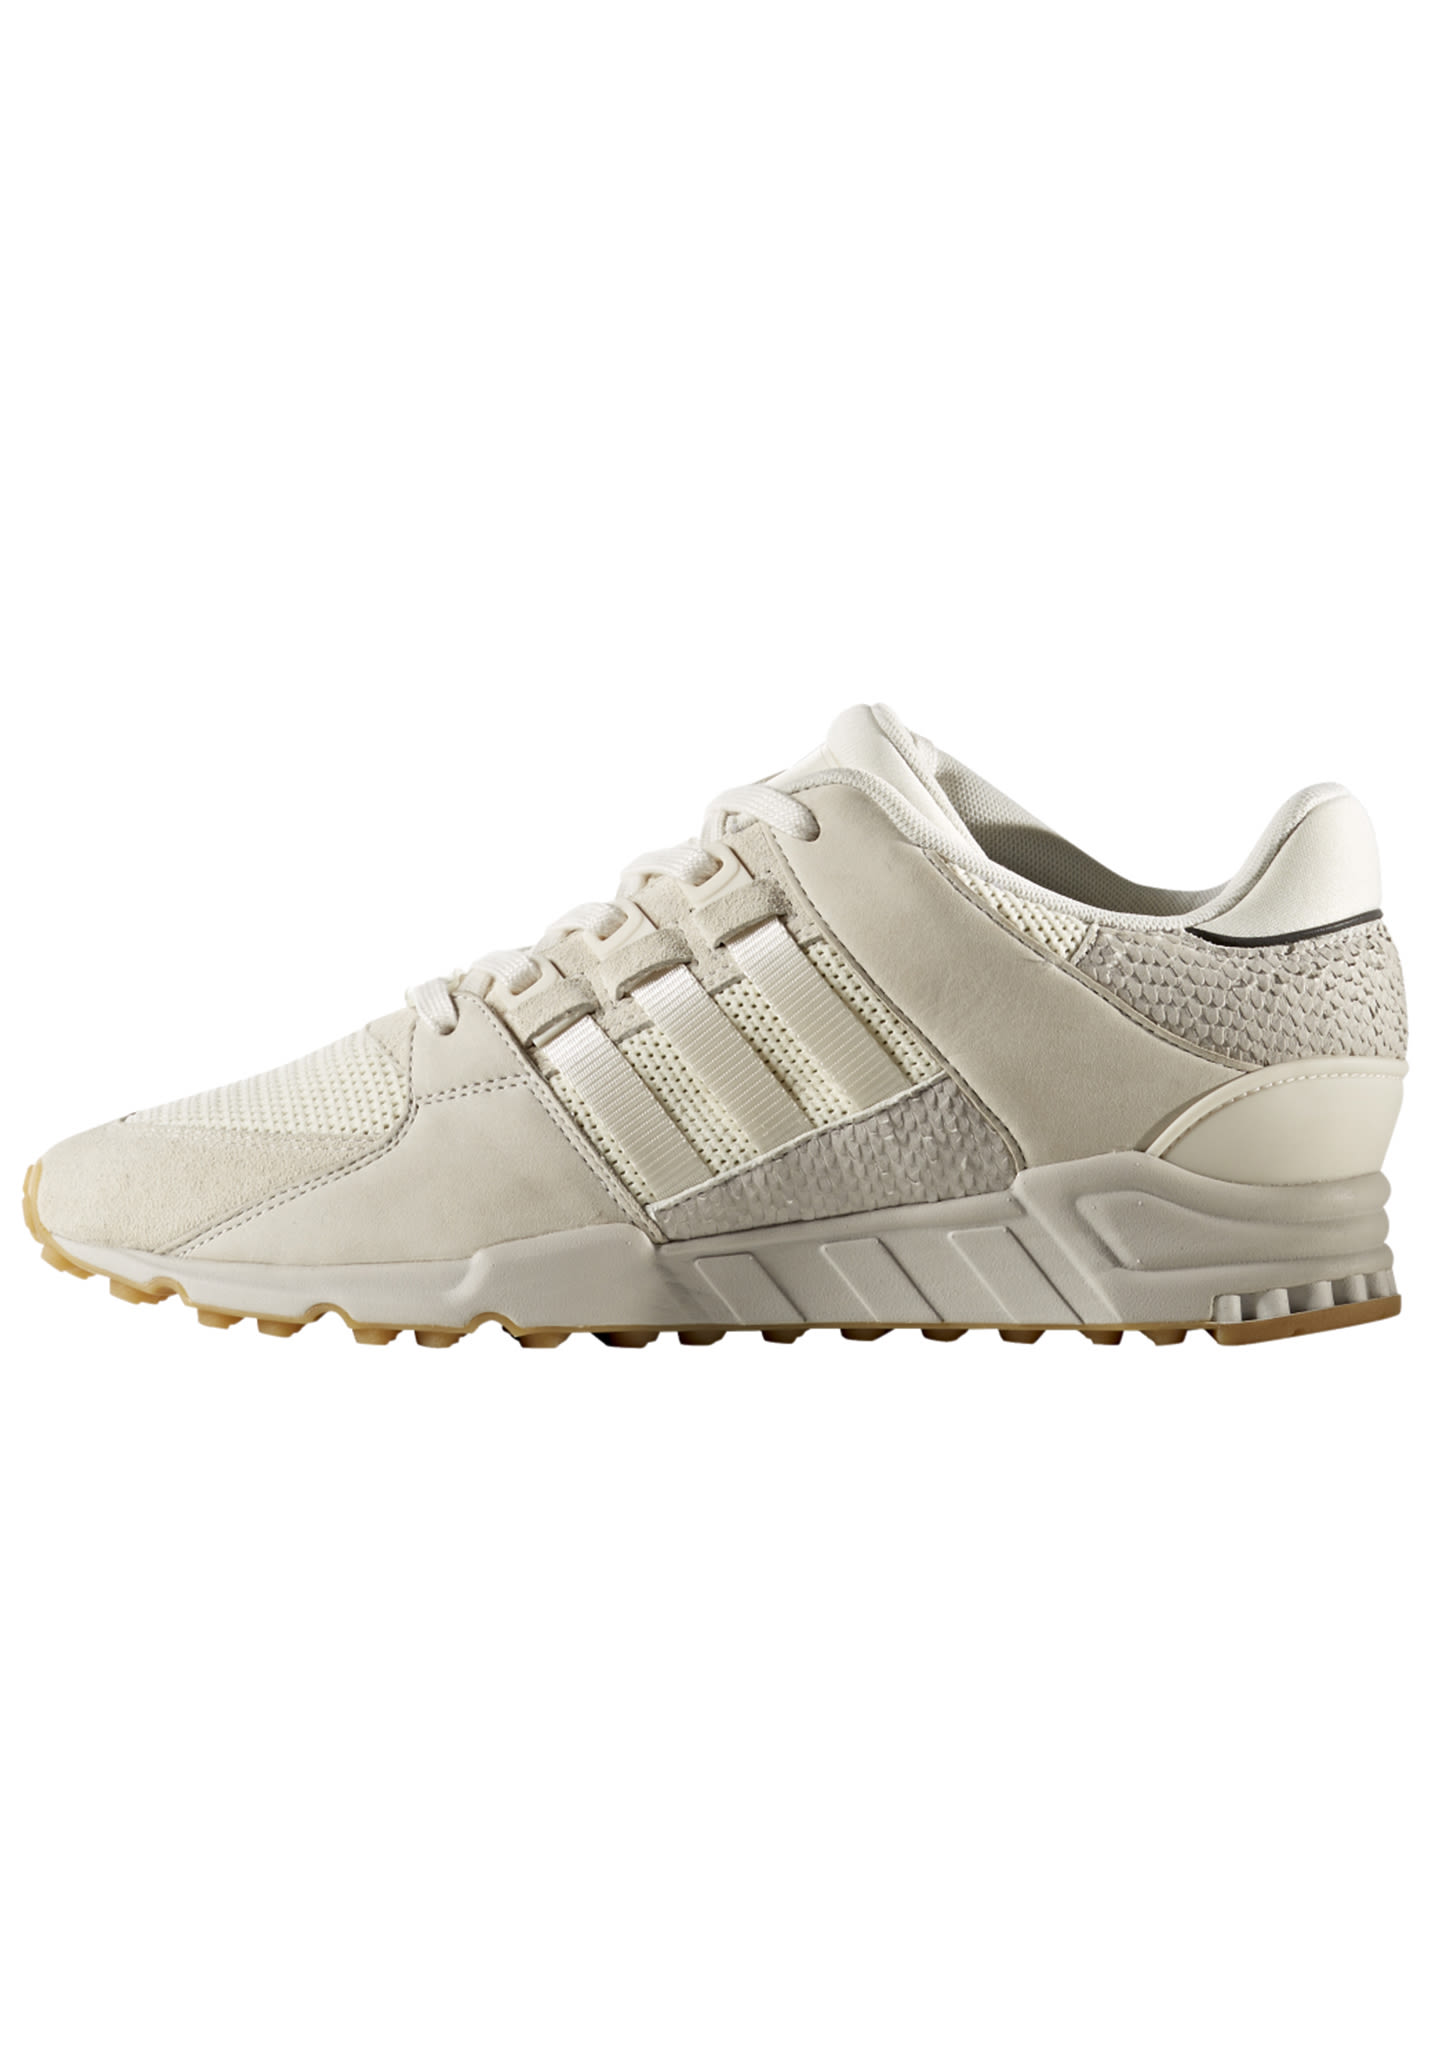 more photos c47c1 07100 ADIDAS ORIGINALS EQT Support RF - Sneakers for Men - White